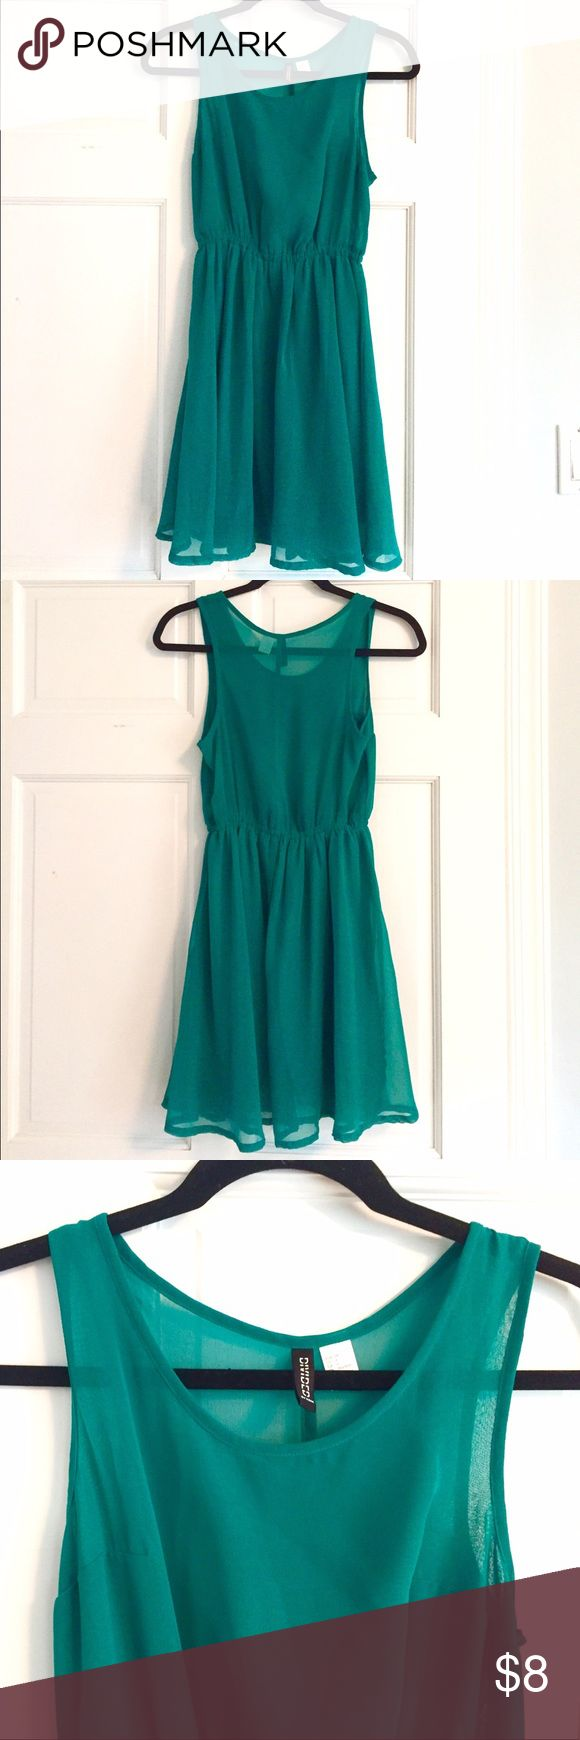 H&M Green Chiffon Dress H&M Green Chiffon Dress. 100% Polyester. H&M Dresses Mini